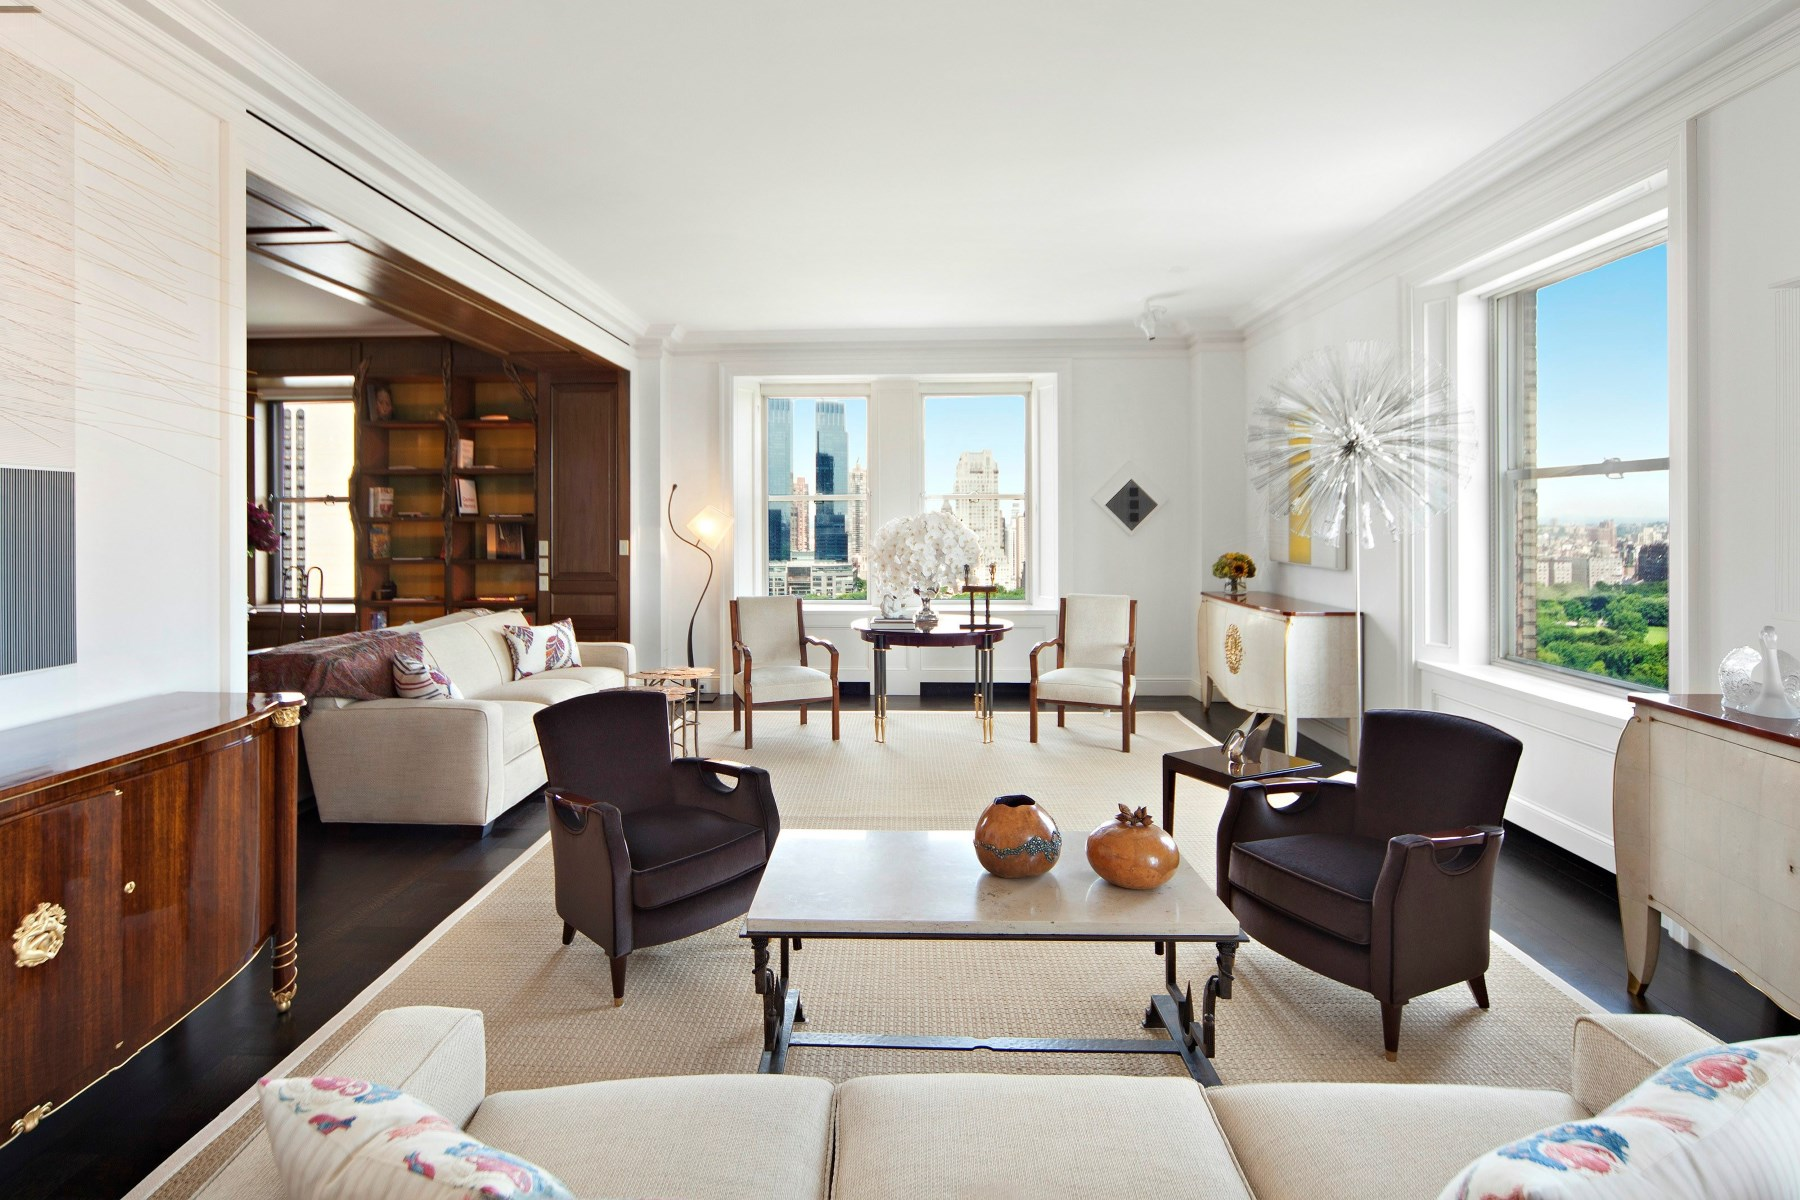 Co-op for Sale at Pierre Hotel Perfection 795 Fifth Avenue Apt 30/31, New York, New York 10065 United States